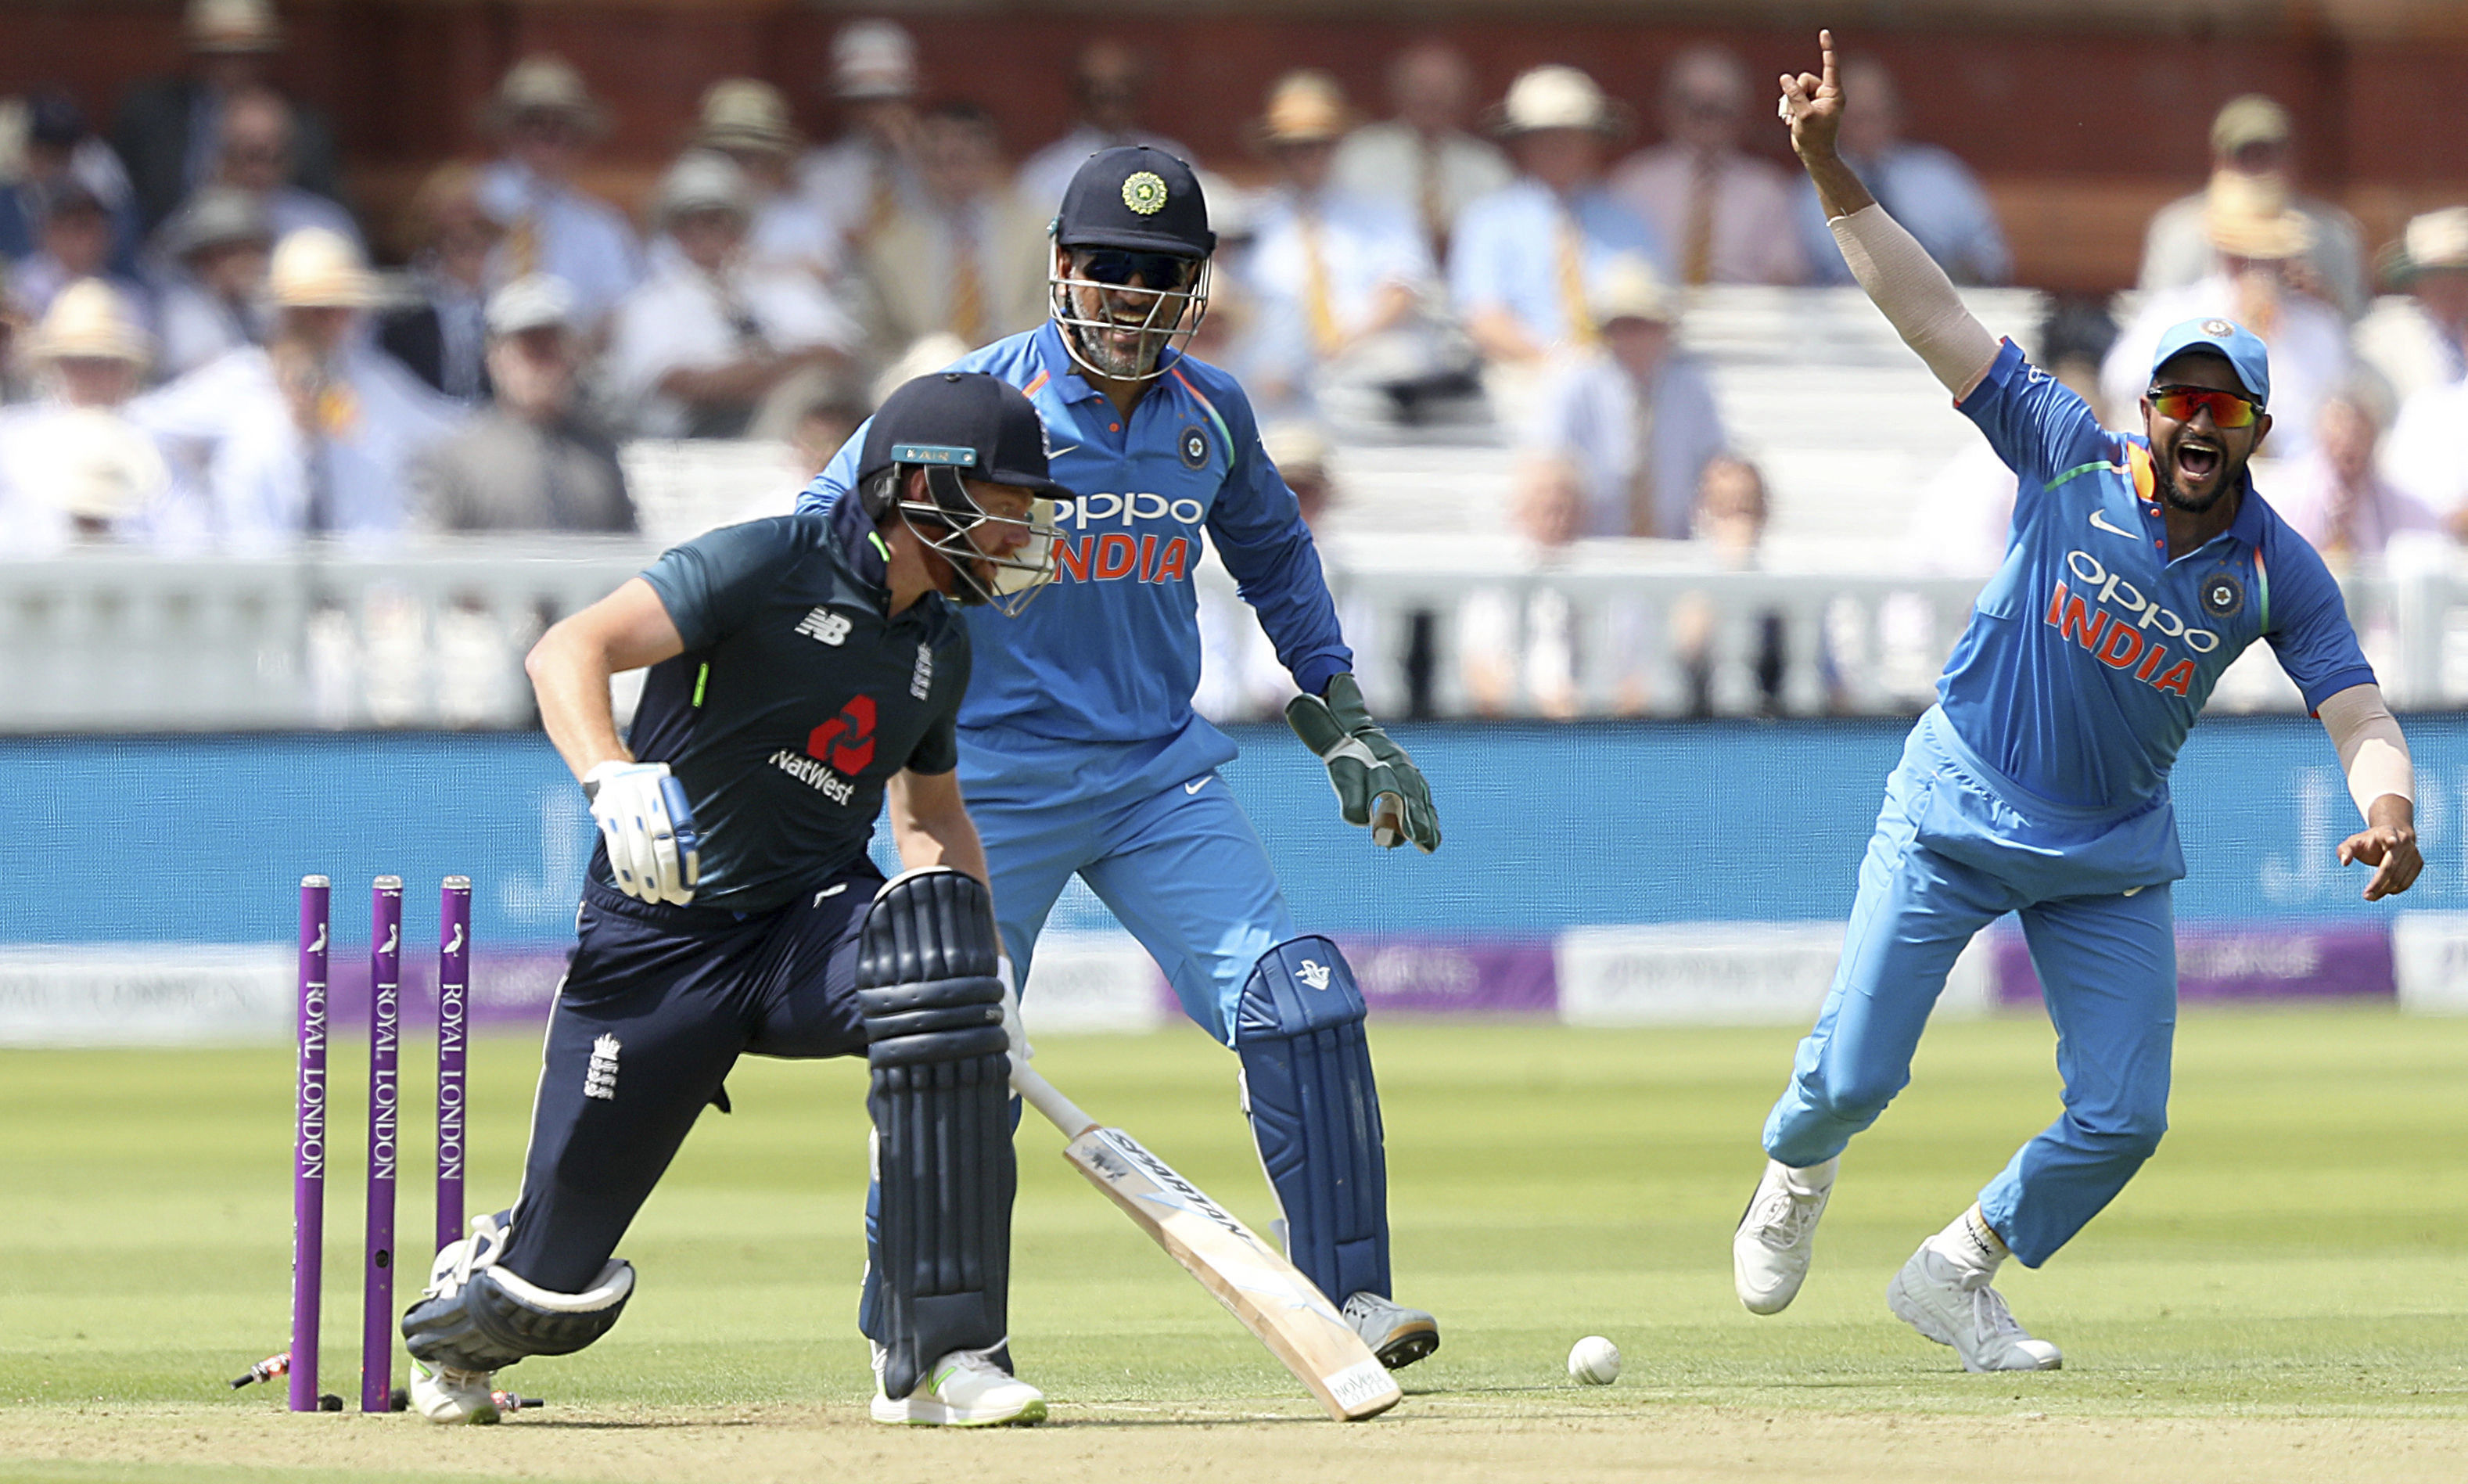 India's MS Dhoni (centre) celebrates as England's Jonny Bairstow is bowled out by India's Kuldeep Yadav (not pictured) during the second one day international cricket match between England and India at Lord's, London on Saturday.